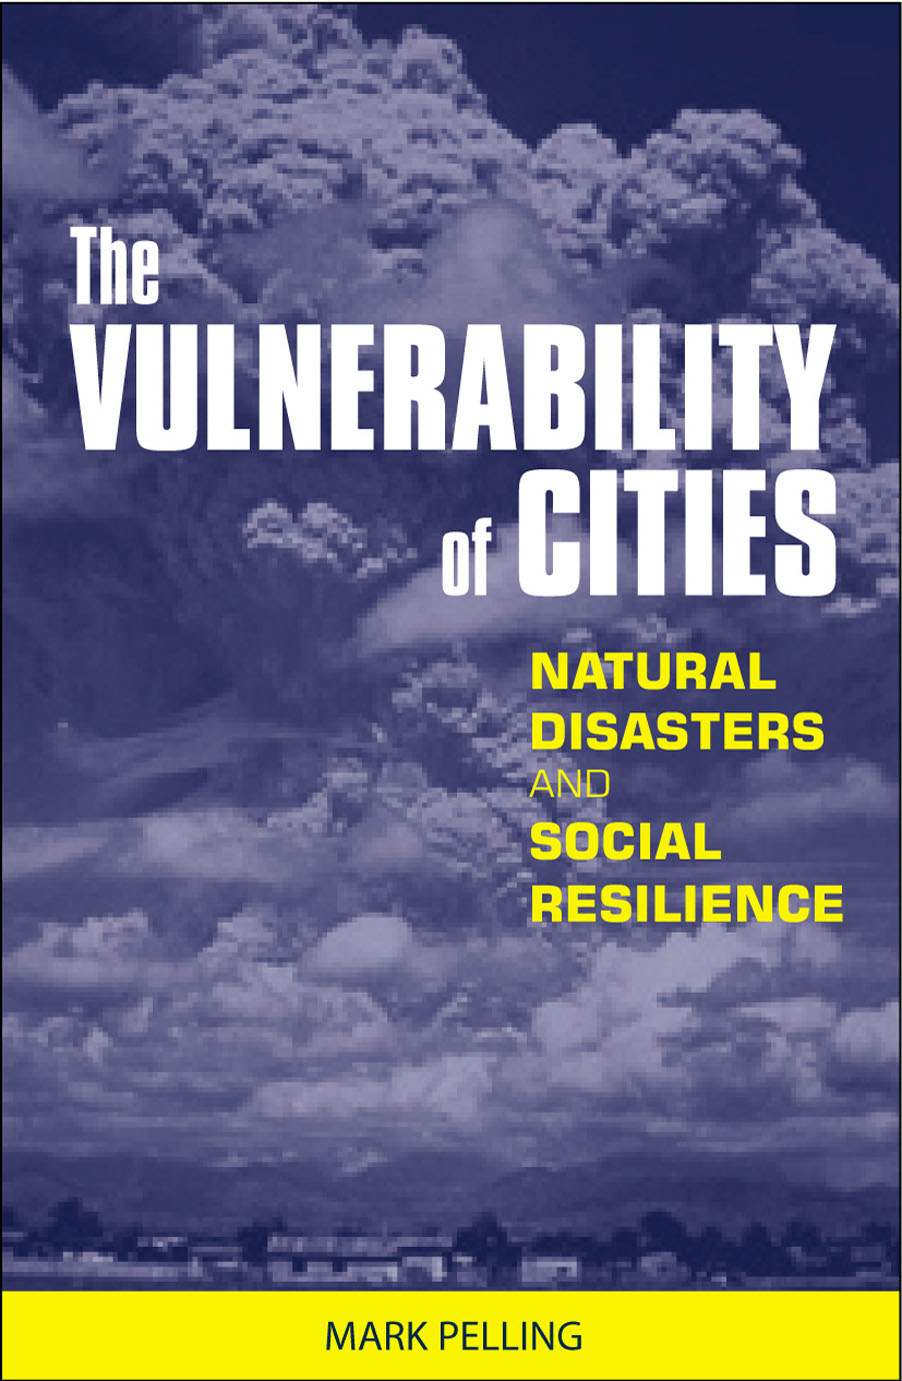 The Vulnerability of Cities Natural Disasters and Social Resilience